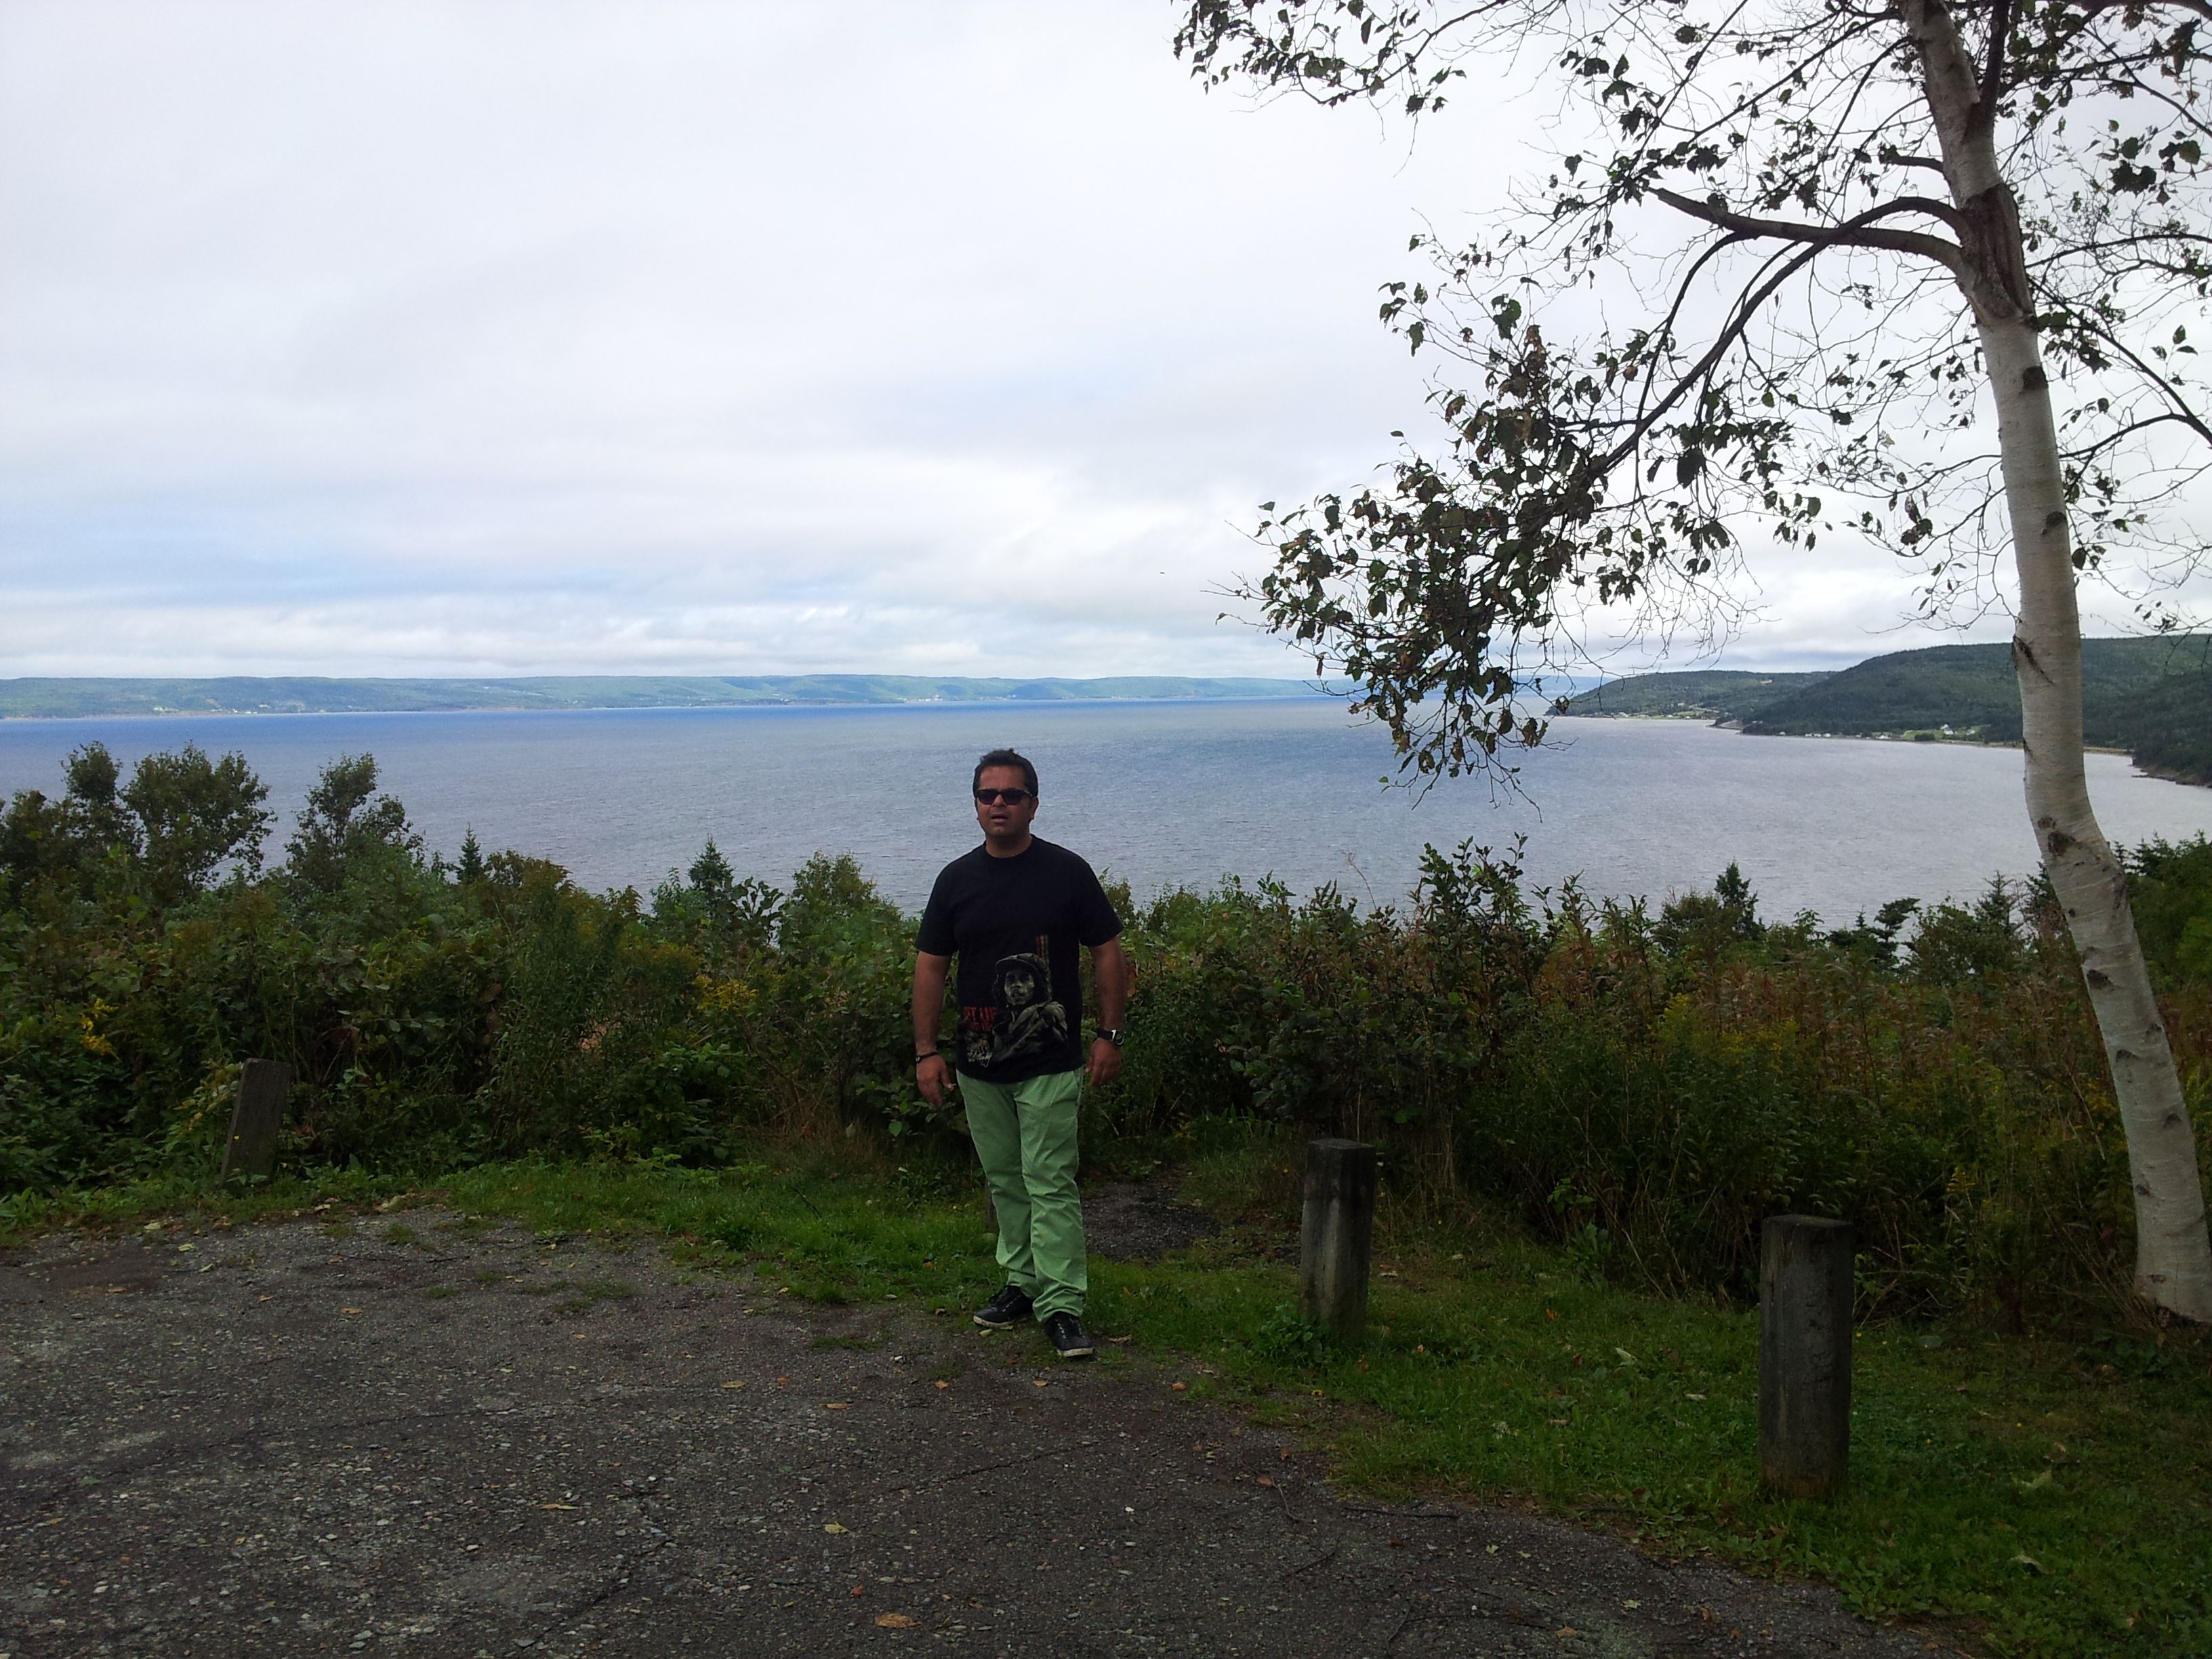 Çhef Vicky looking out over the Bras d'Or Lakes, #CapeBreton #Island #NovaScotia